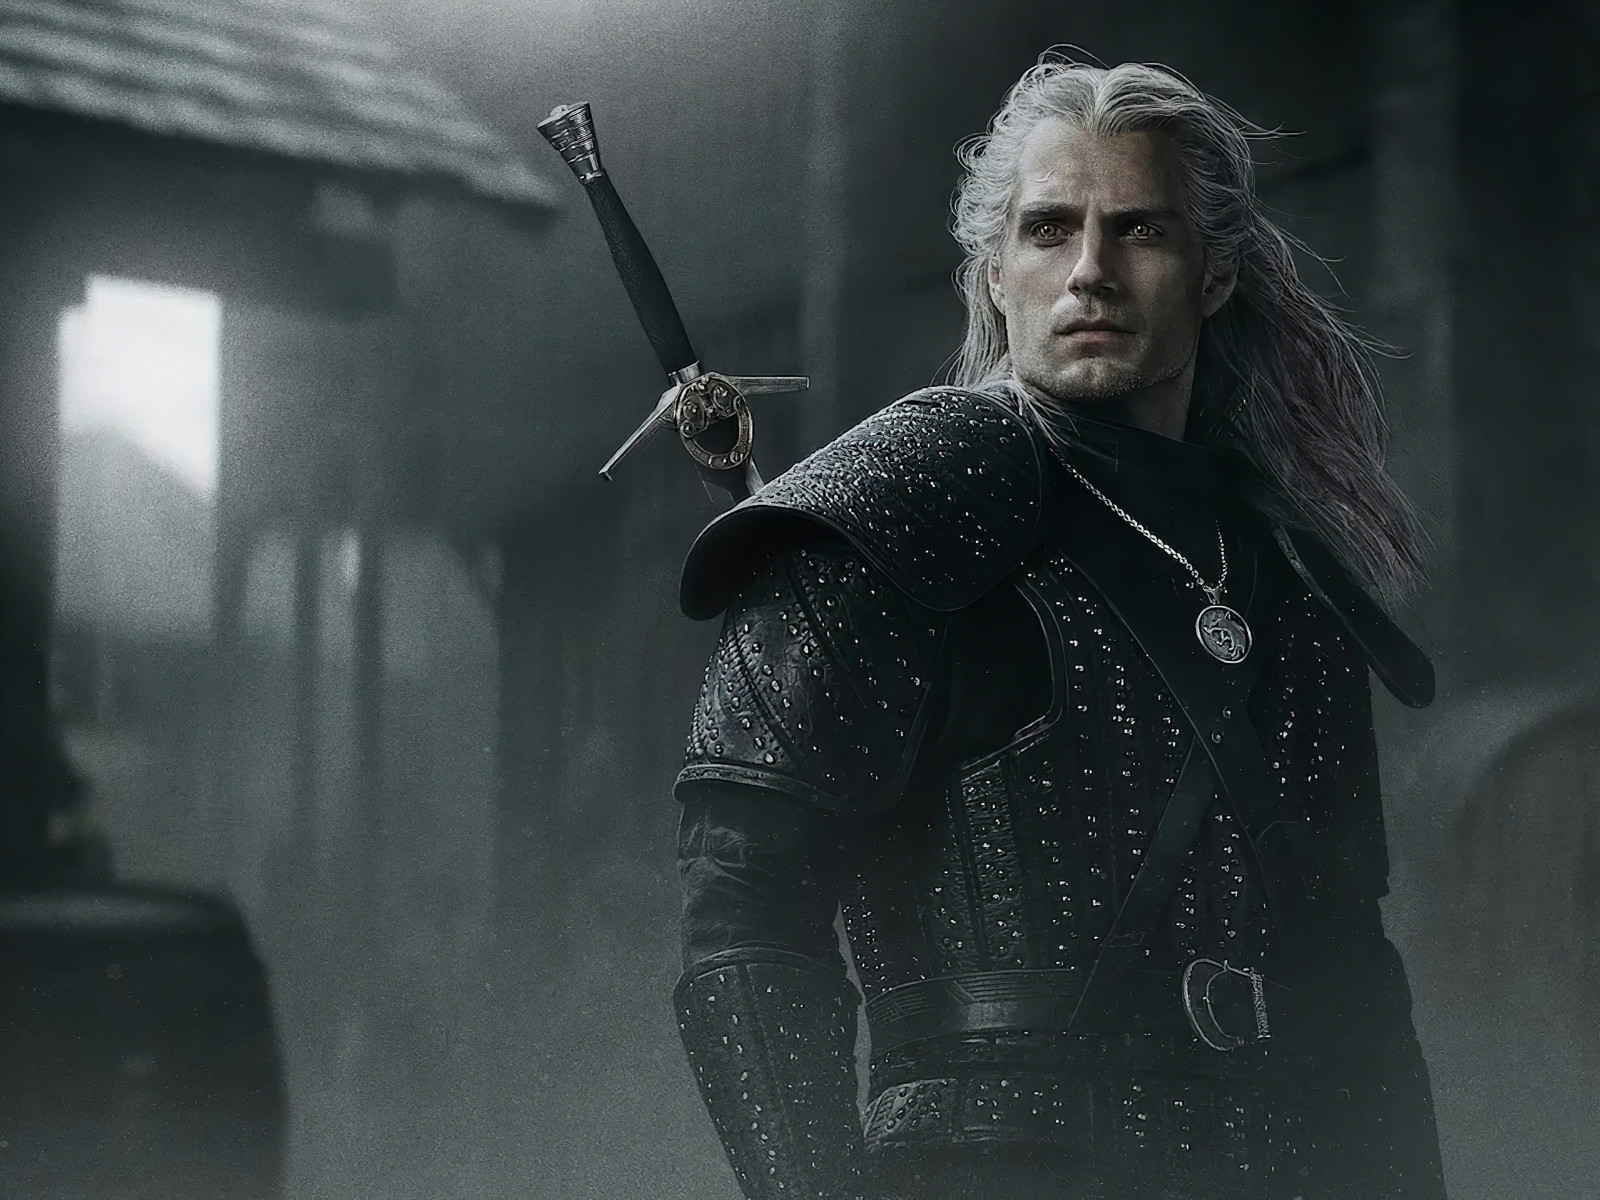 Henry Cavli in The Witcher wallpaper 1600x1200